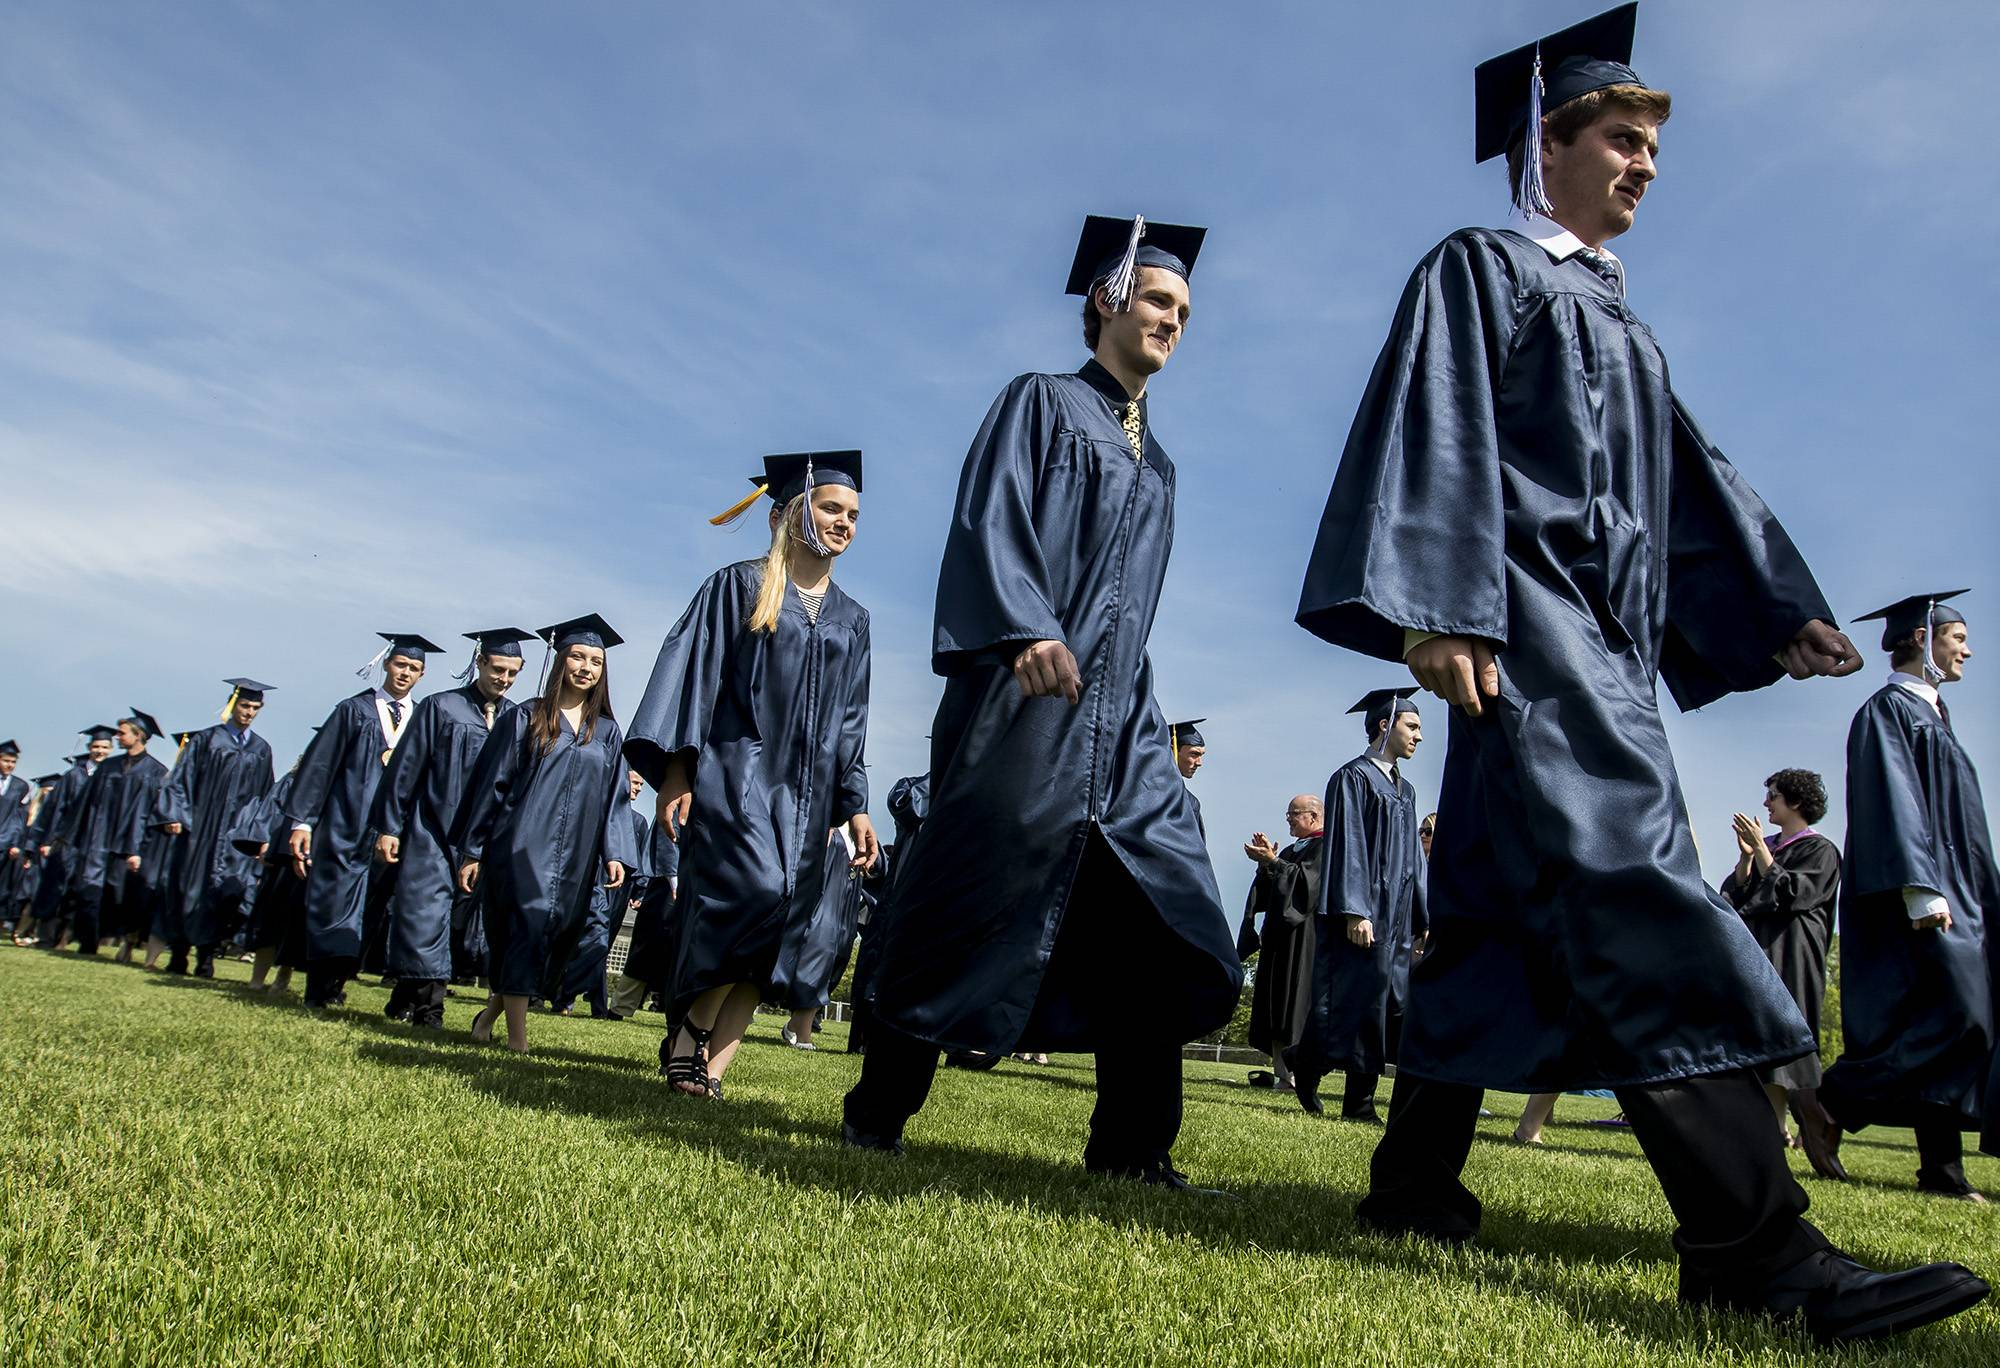 Cary-Grove students walk to their seats during commencement ceremonies at Cary-Grove High School Saturday, May 27, 2017.